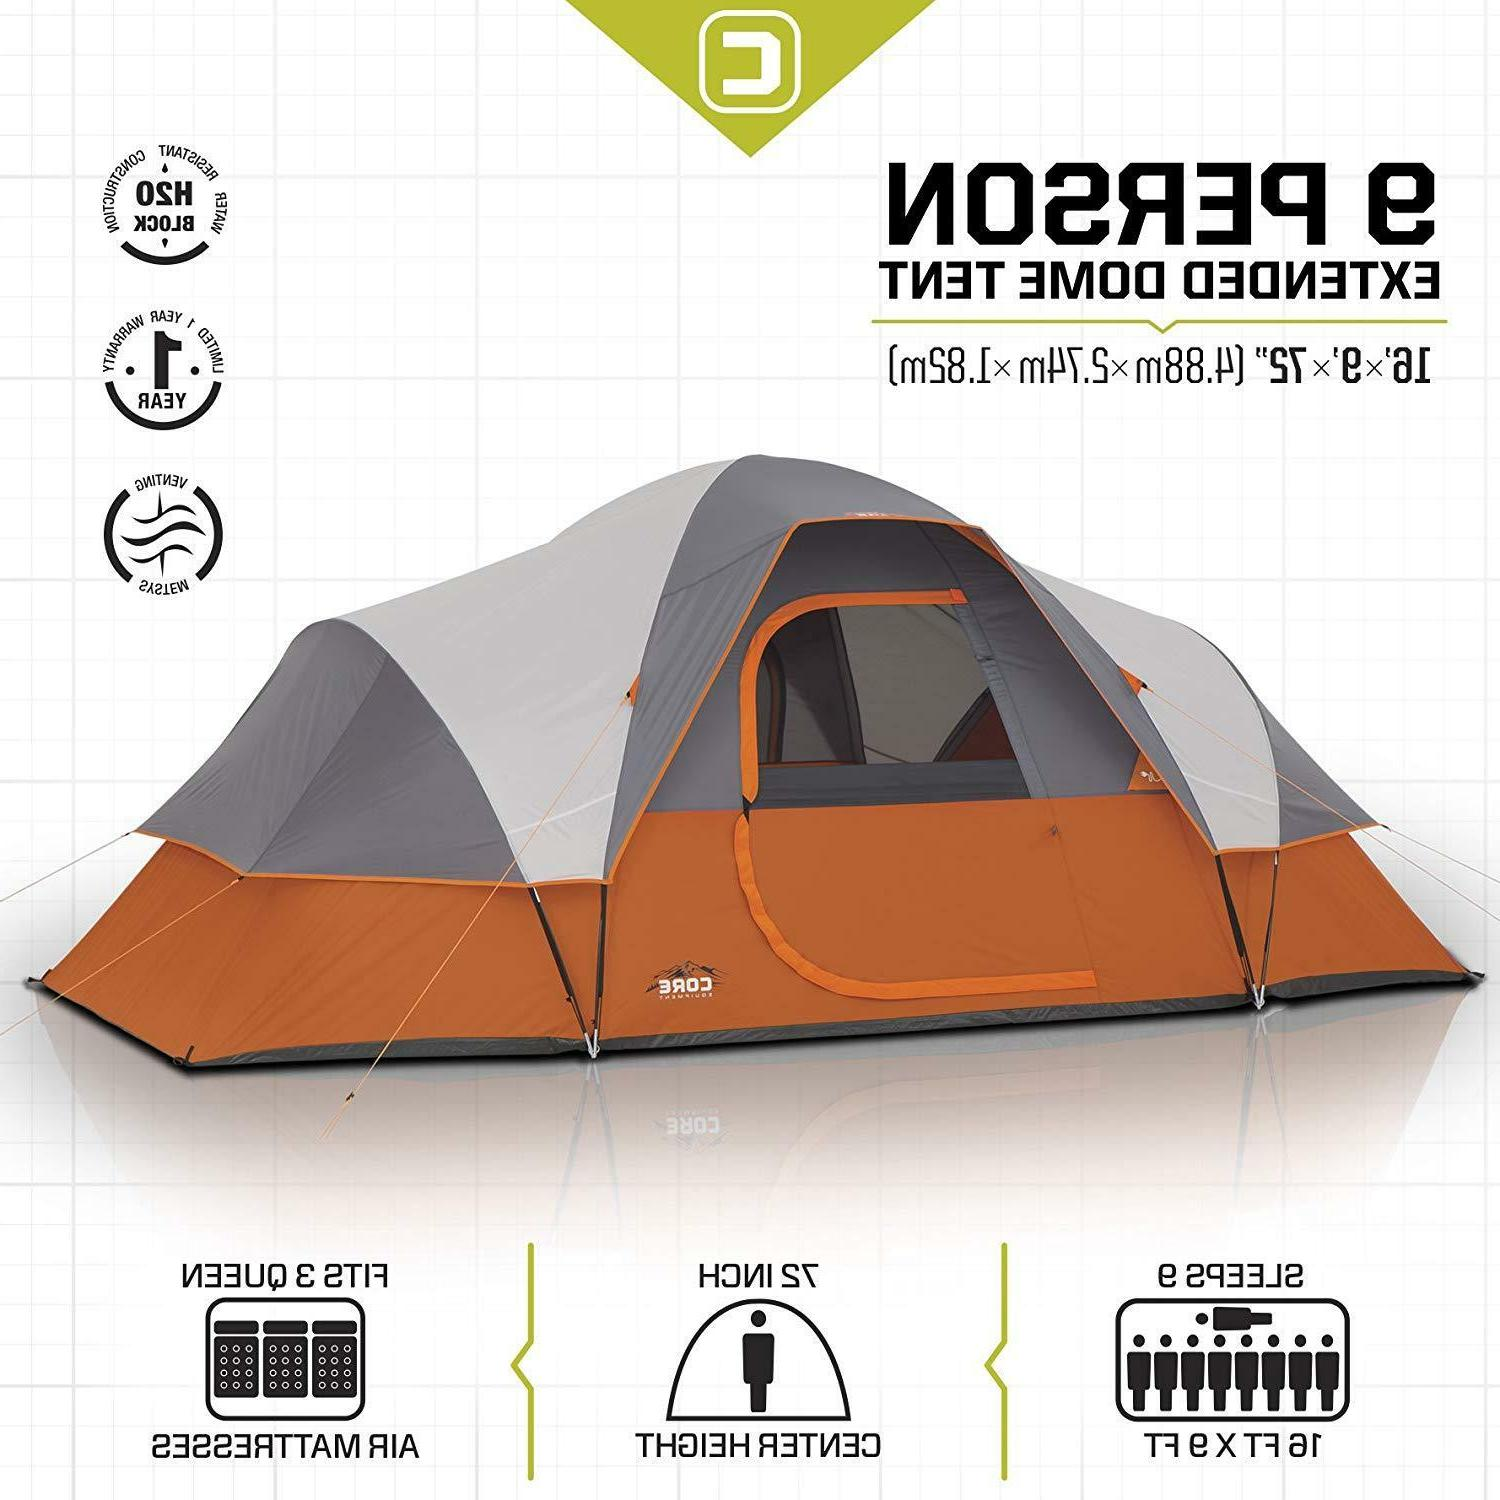 CORE 9 Dome Tent Camping Easy - 16' 9'